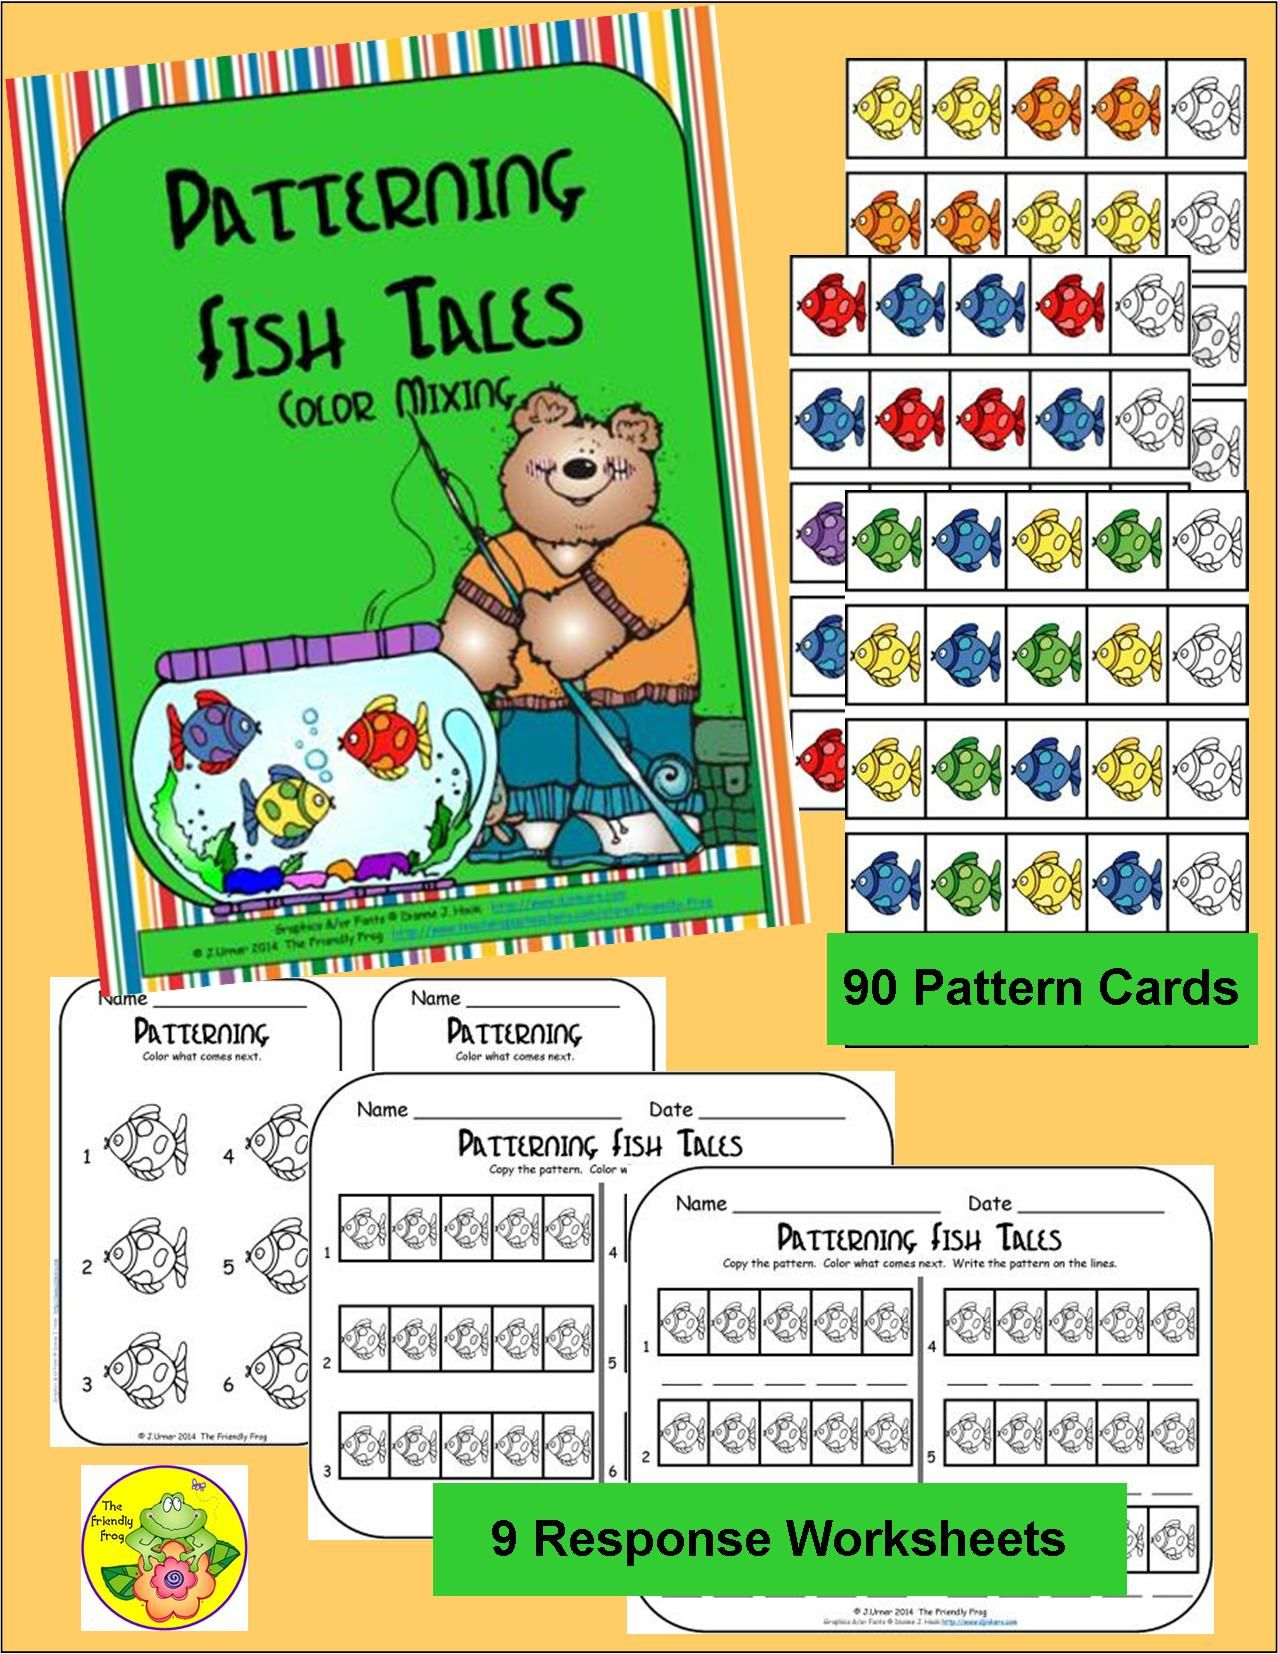 Patterning Fish Tales Color Mixing